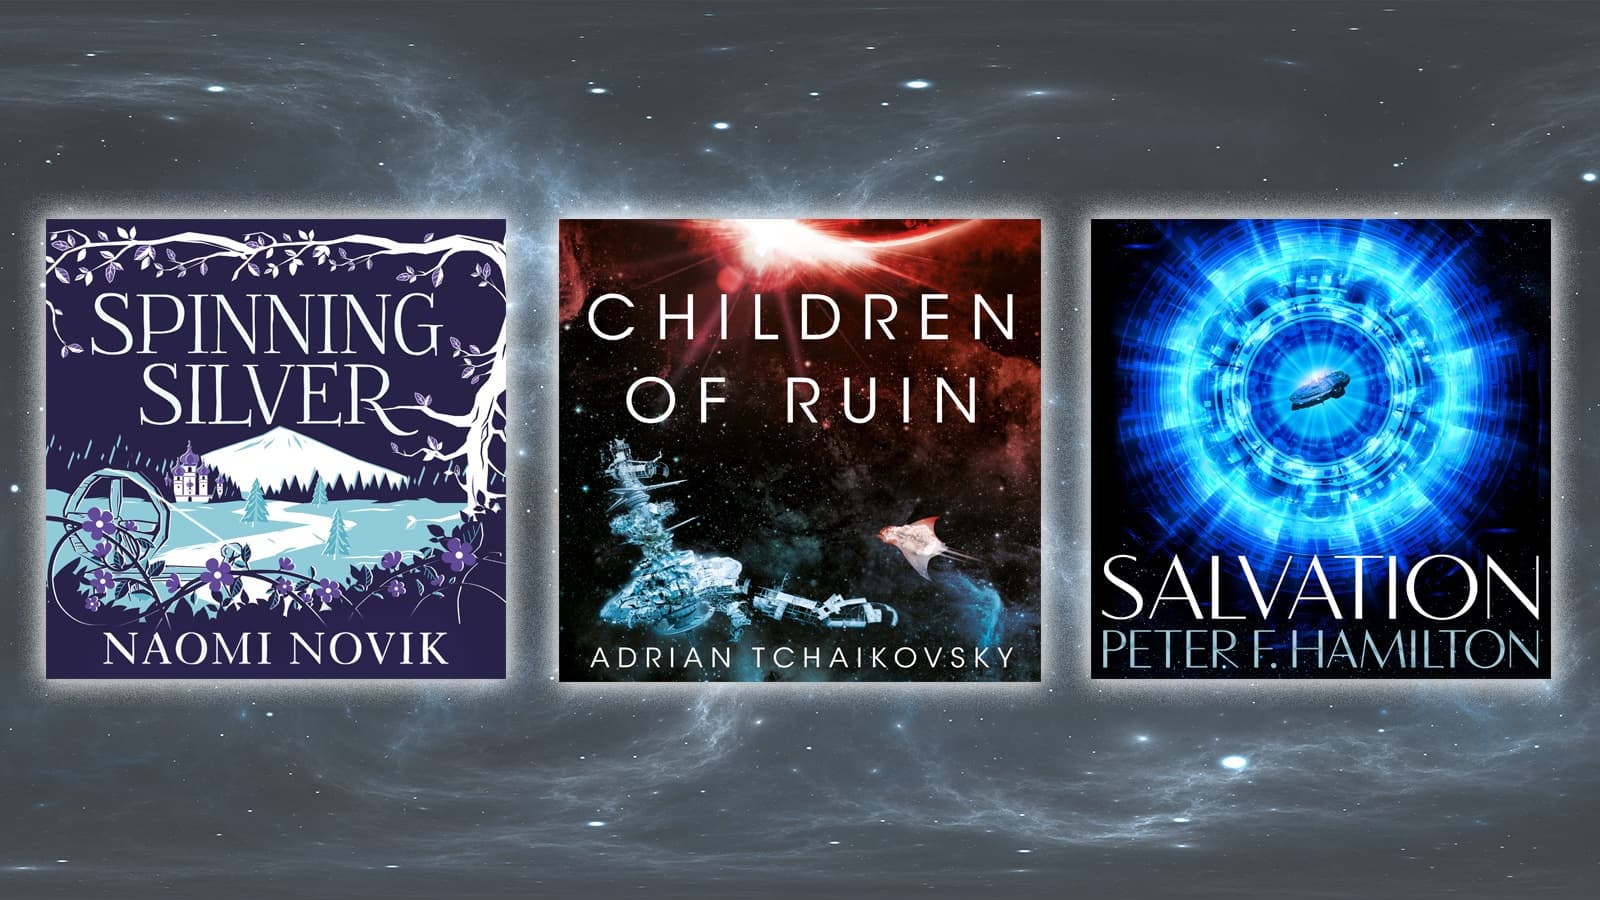 Book covers of Spinning Silver, Children of Ruin and Salvation on a swirling black background